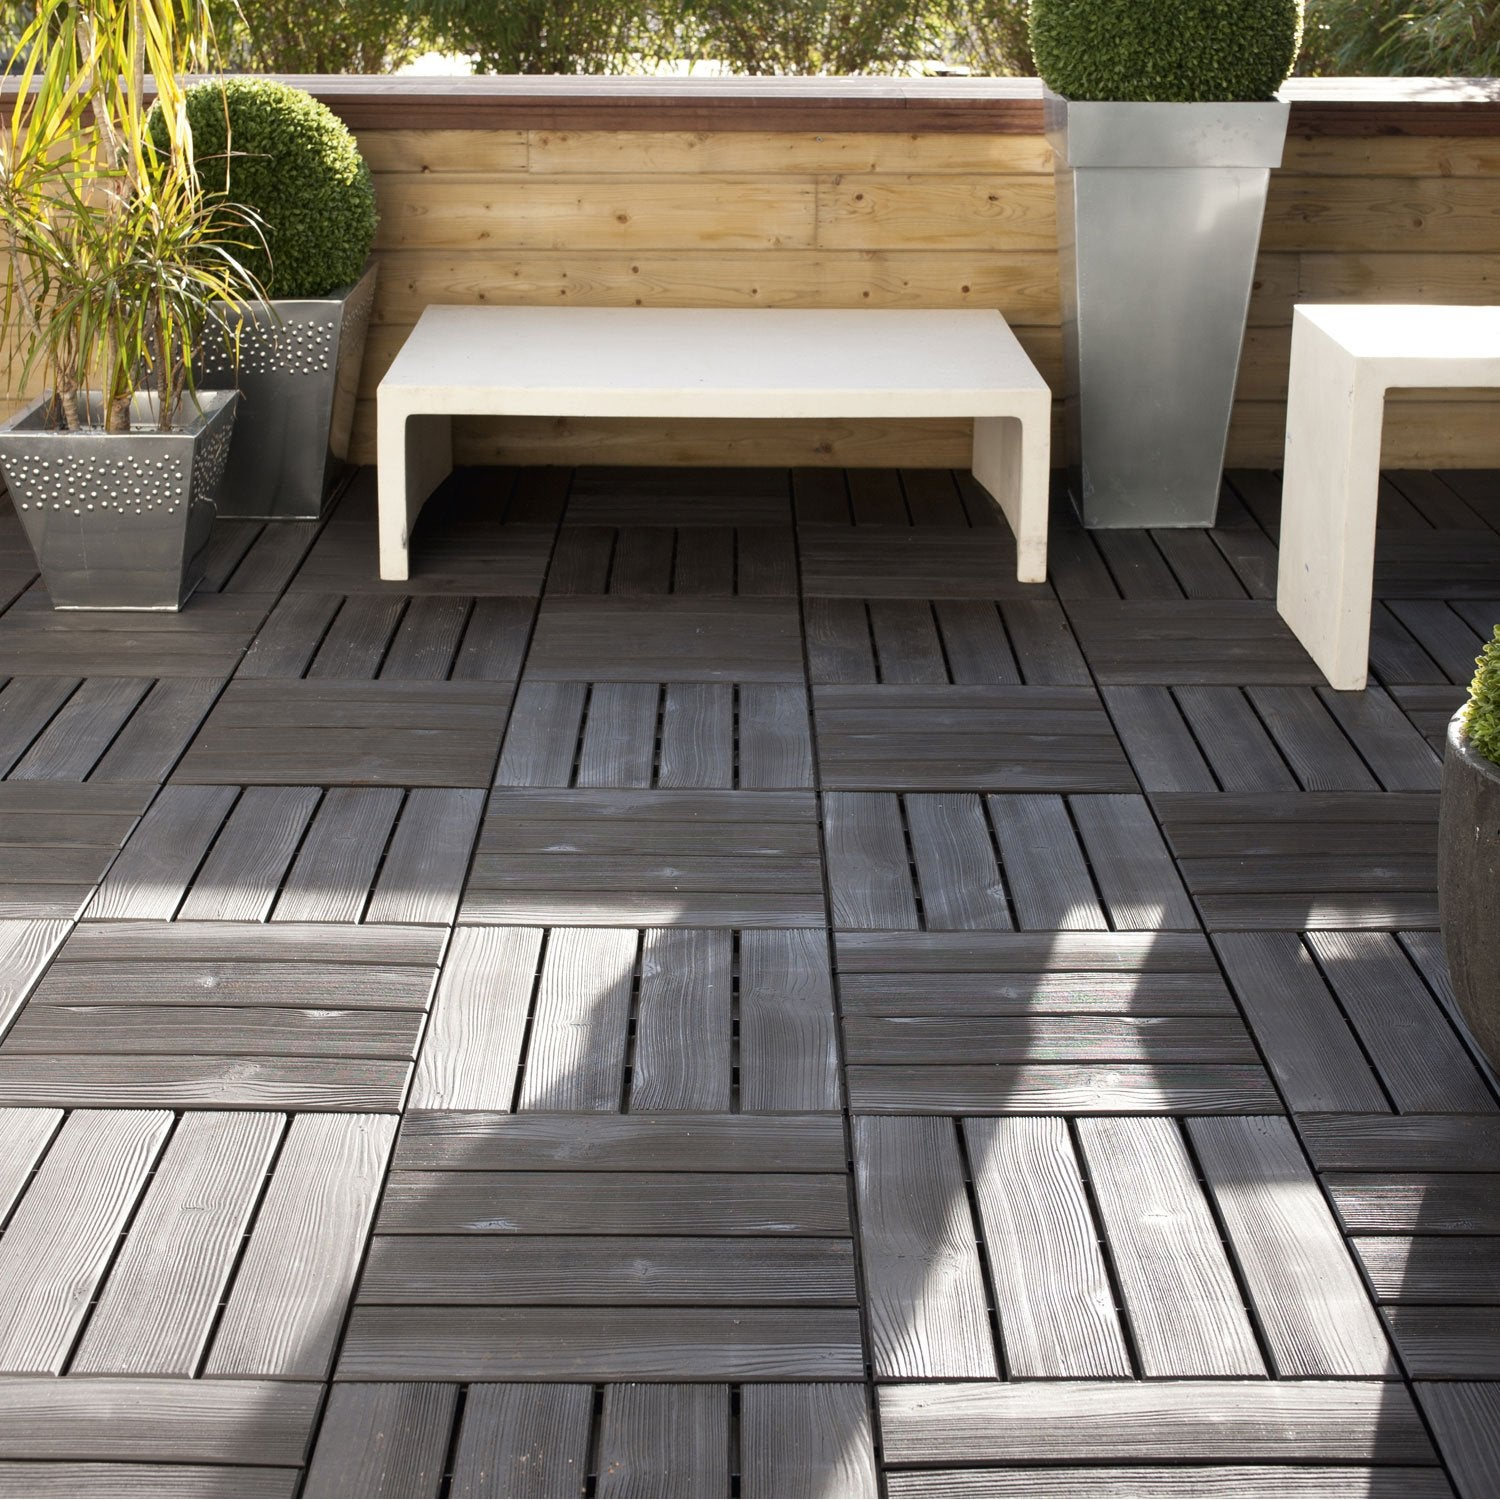 Dalle clipsable polypropyl ne noir x cm x ep - Dalle terrasse clipsable ...